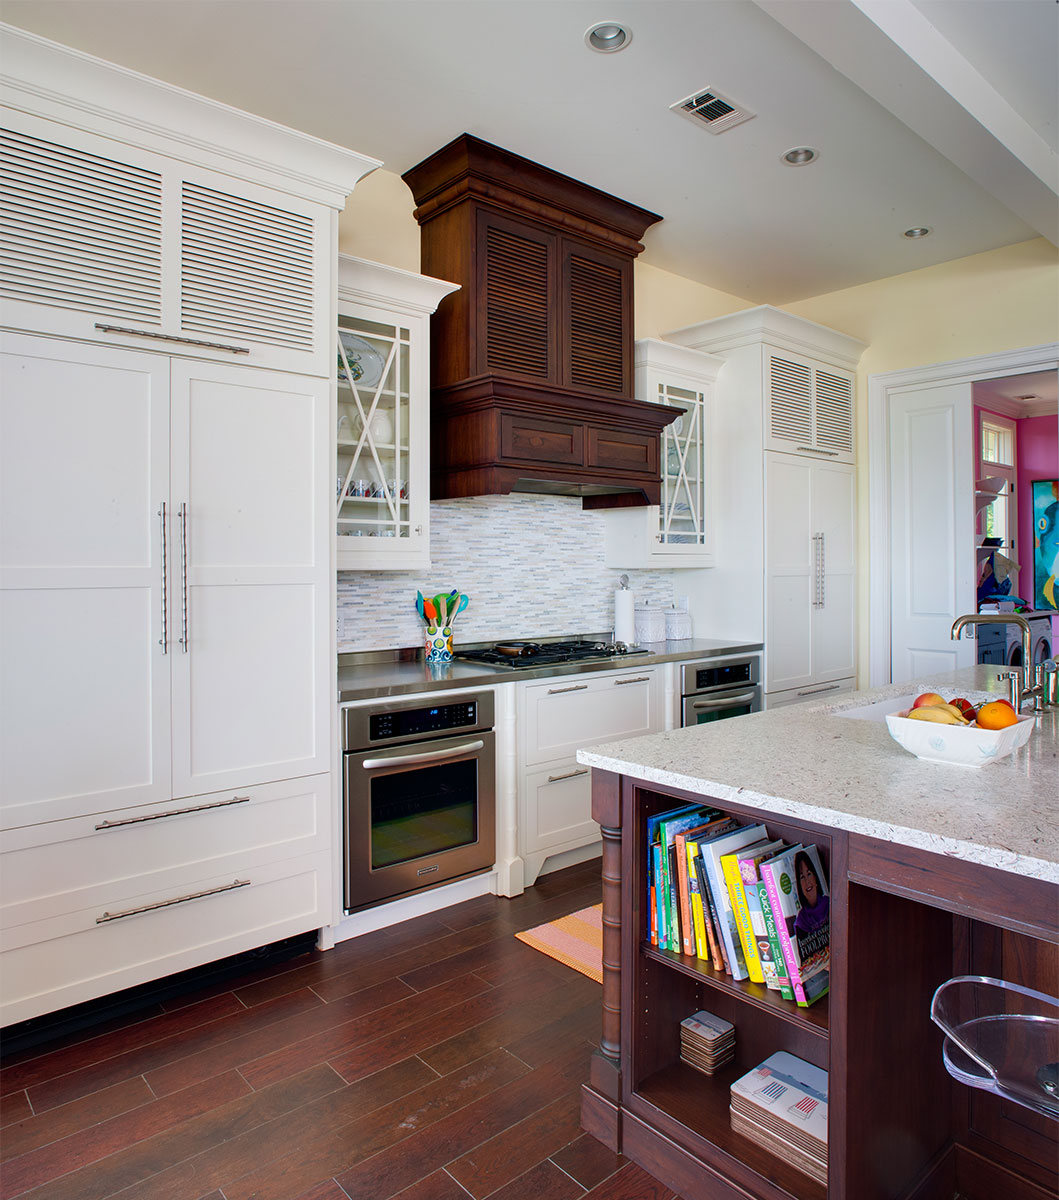 Kitchen Island Paradise In Kingsgrove: Arts & Crafts Kitchen Paradise Plain & Fancy